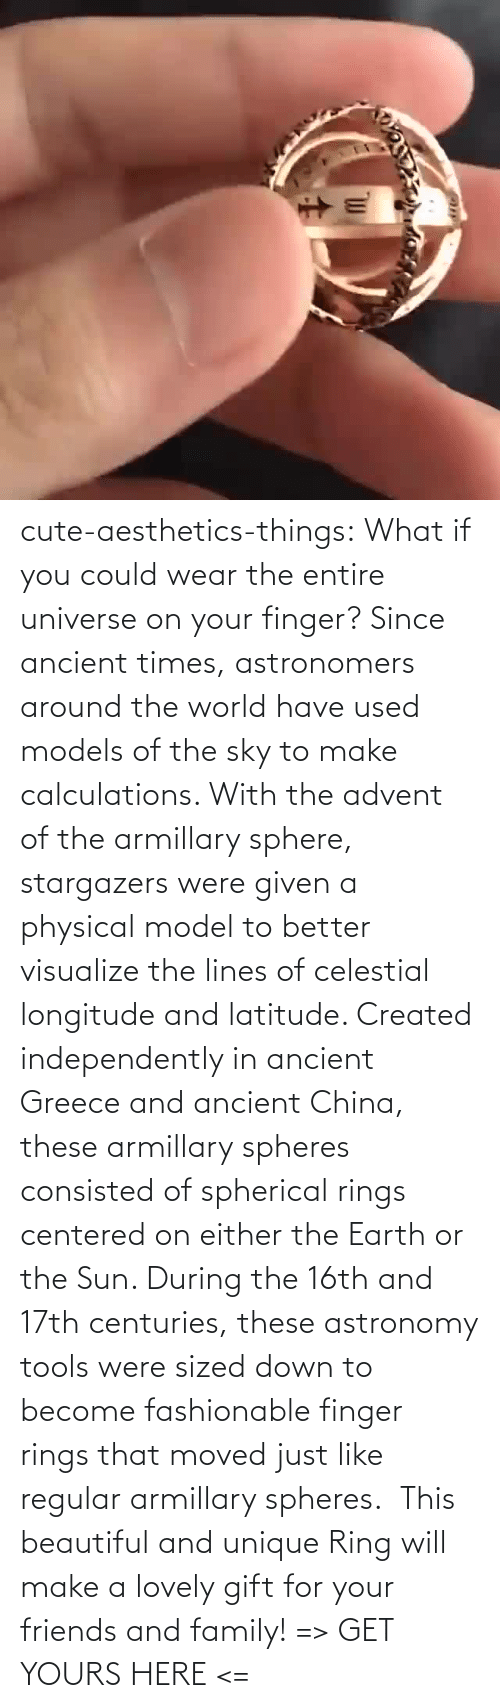 Physical: cute-aesthetics-things: What if you could wear the entire universe on your finger? Since ancient times, astronomers around the world have used models of the sky to make calculations. With the advent of the armillary sphere, stargazers were given a physical model to better visualize the lines of celestial longitude and latitude. Created independently in ancient Greece and ancient China, these armillary spheres consisted of spherical rings centered on either the Earth or the Sun. During the 16th and 17th centuries, these astronomy tools were sized down to become fashionable finger rings that moved just like regular armillary spheres.  This beautiful and unique Ring will make a lovely gift for your friends and family! => GET YOURS HERE <=